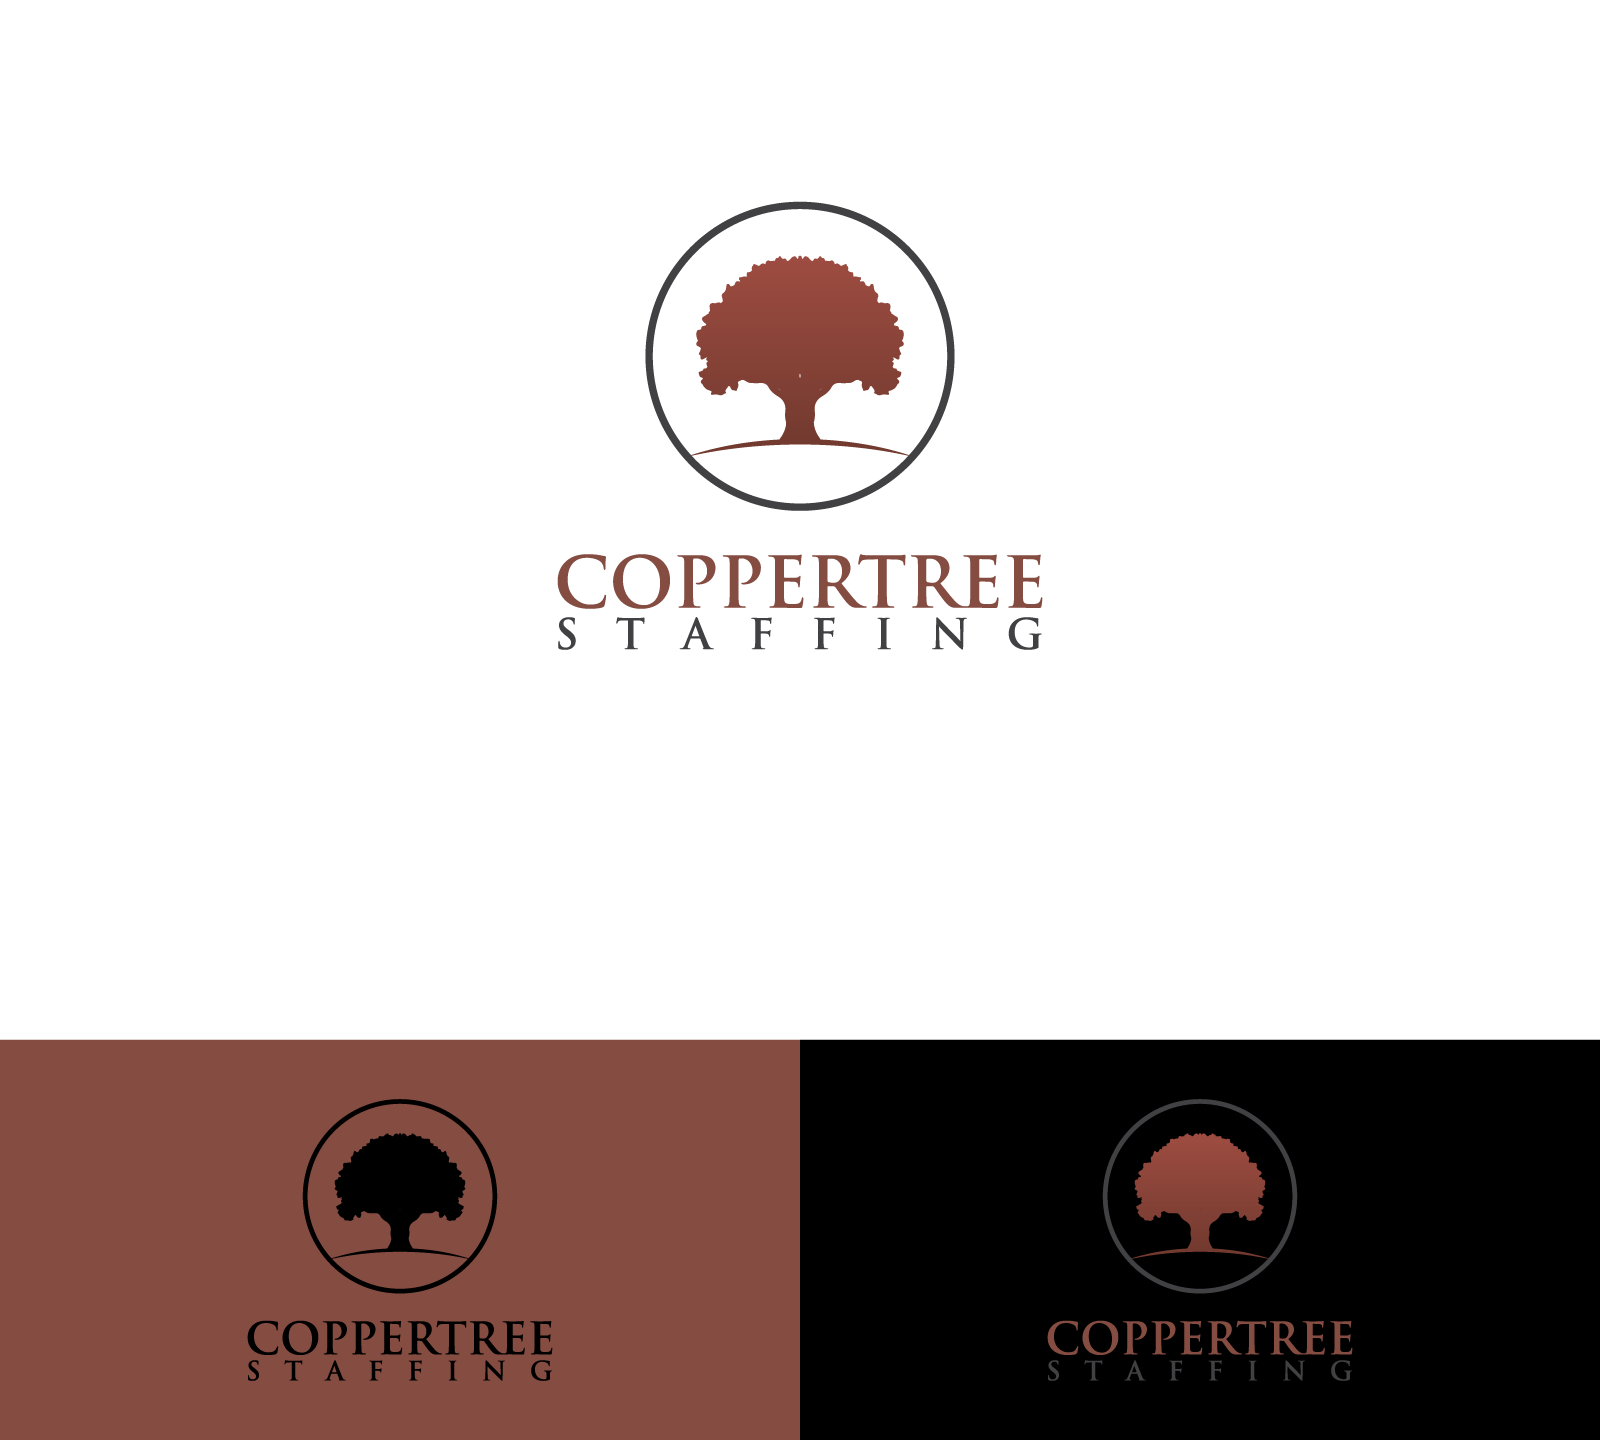 Create a new logo for an IT Staffing firm - Coppertree Staffing